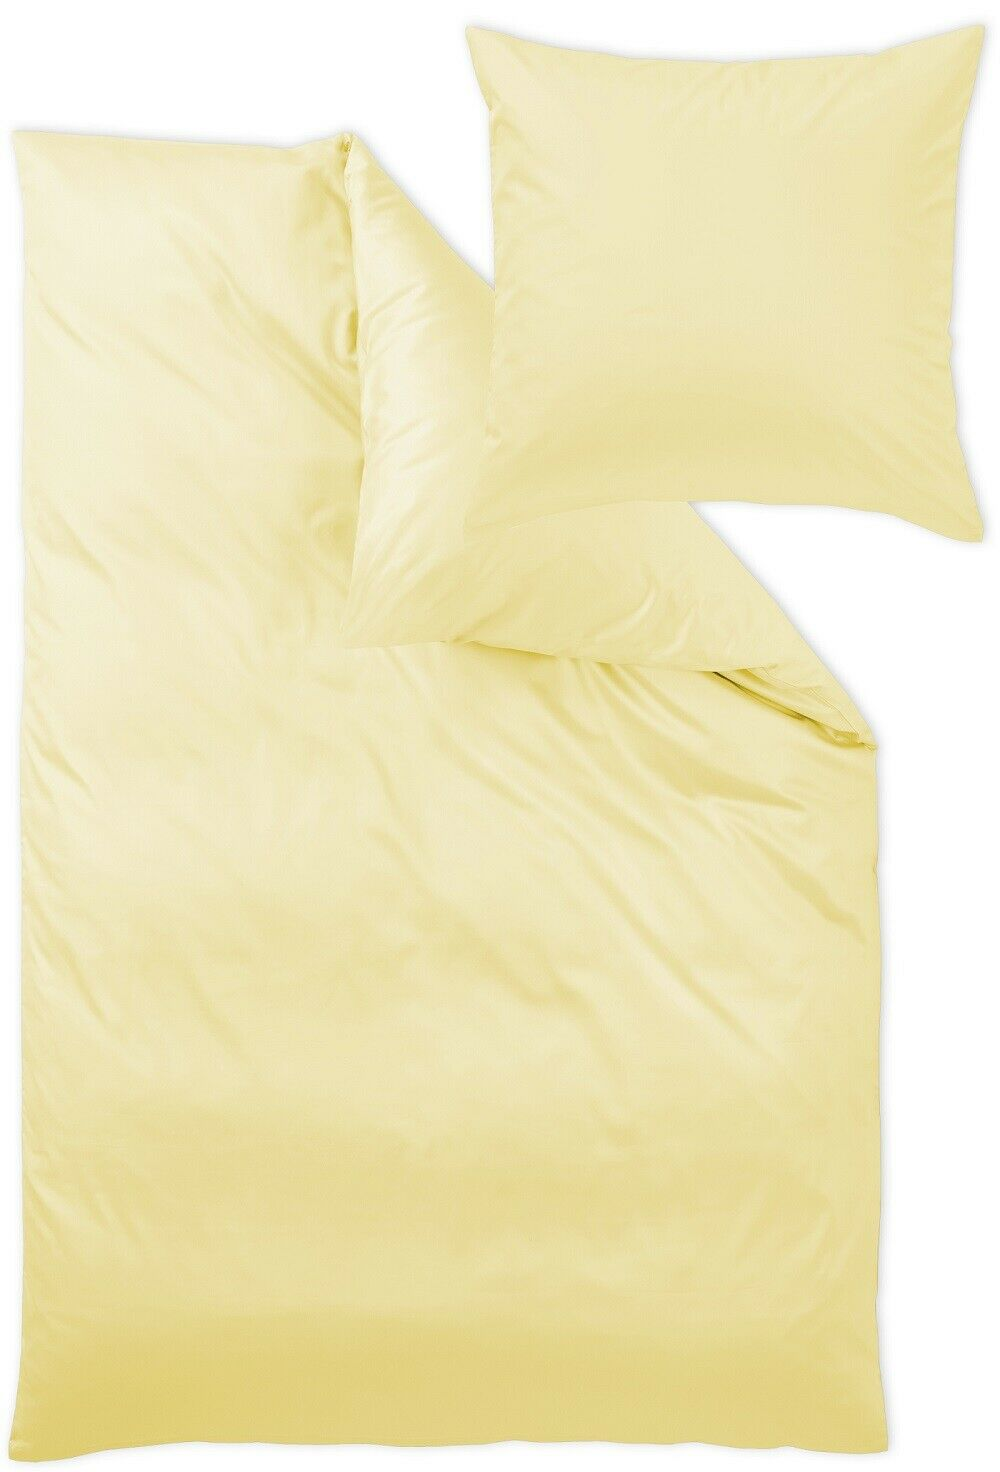 Bettwäsche Set 155x220 Bed Linens Sets Bedding Sets Duvet Covers Bettwäsche Set